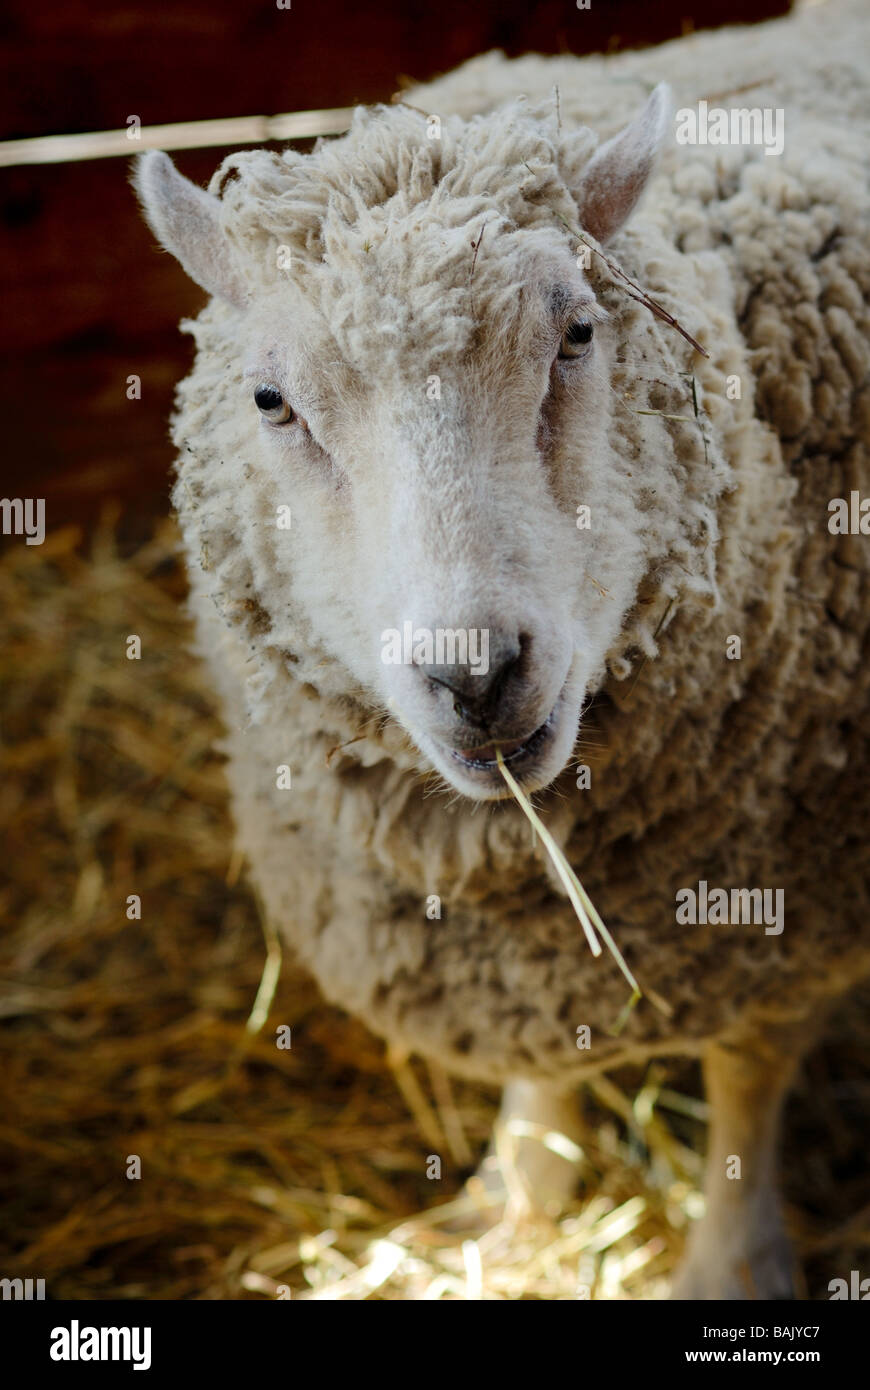 A sheep looks comical with a piece of hay hanging frmo his mouth like a cigarette. - Stock Image